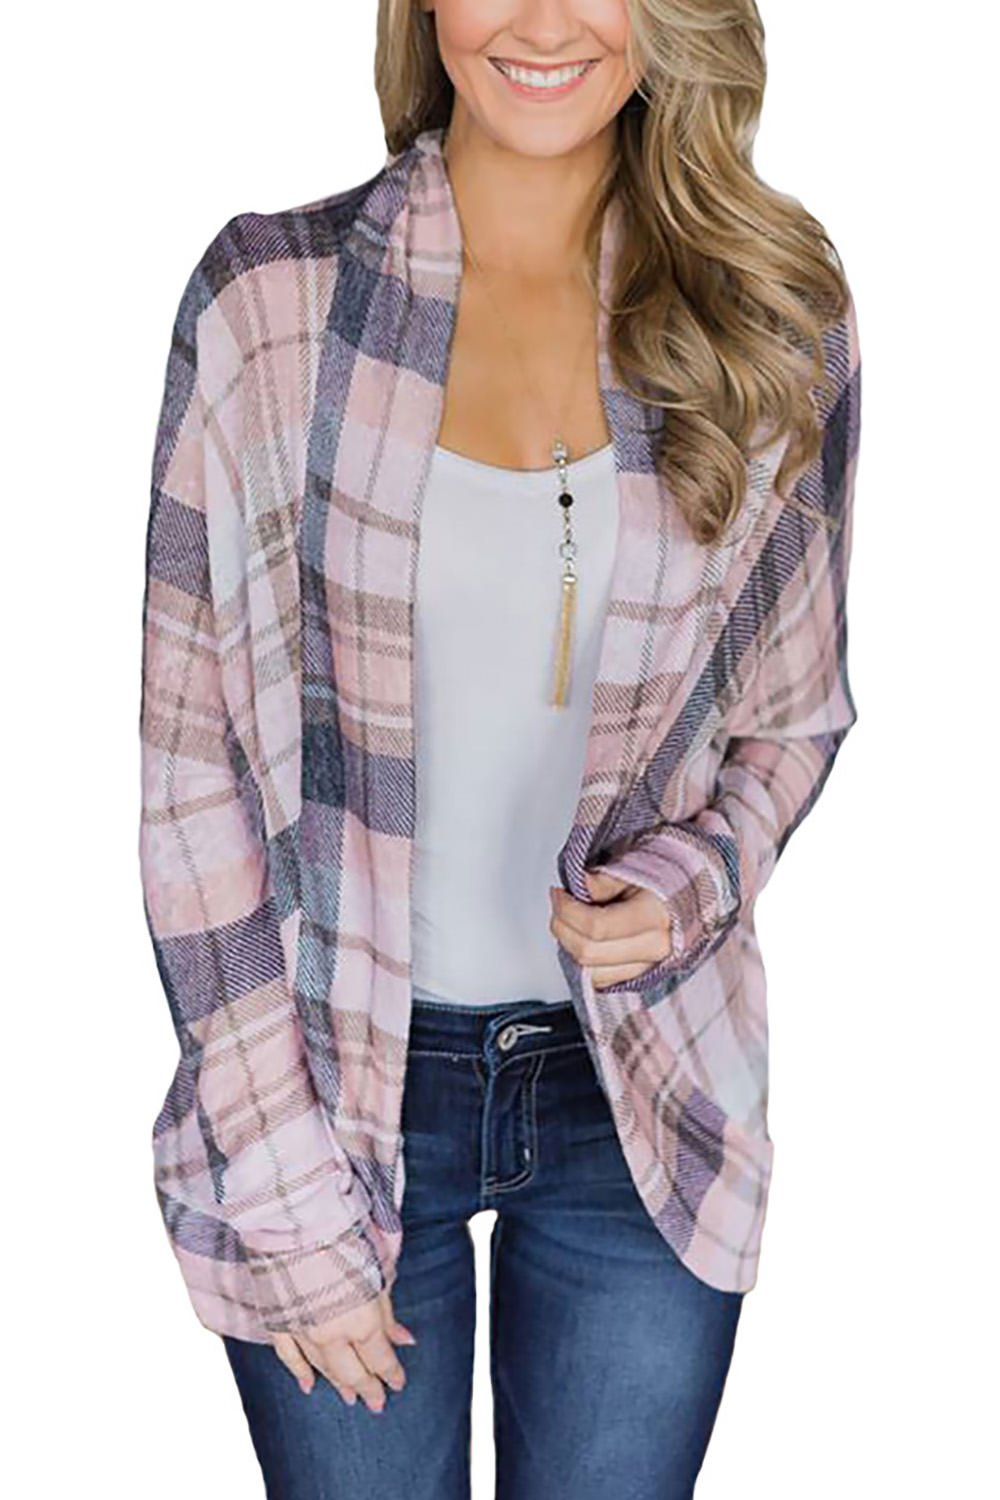 Minipeach Women's Casual Plaid Print Shirt Long Sleeve Open Front Cardigan Coverup Coat Tops Outwear